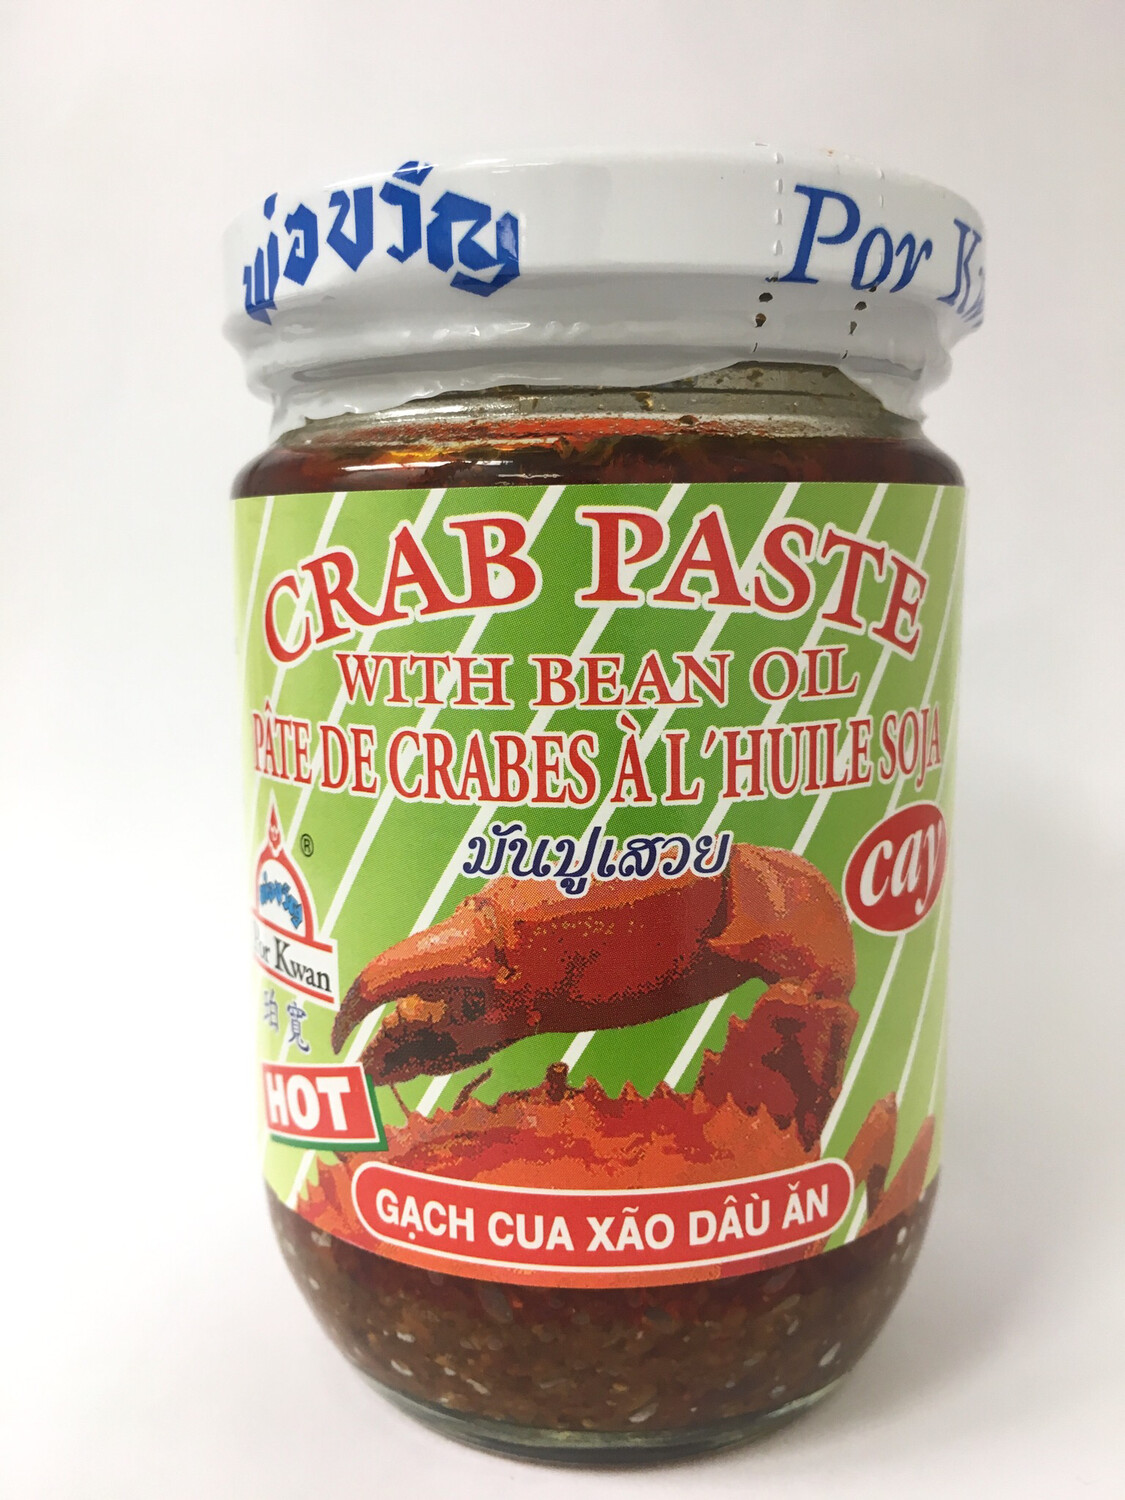 PORKWAN HOT CRAB PASTE WITH BEAN OIL 24X200G